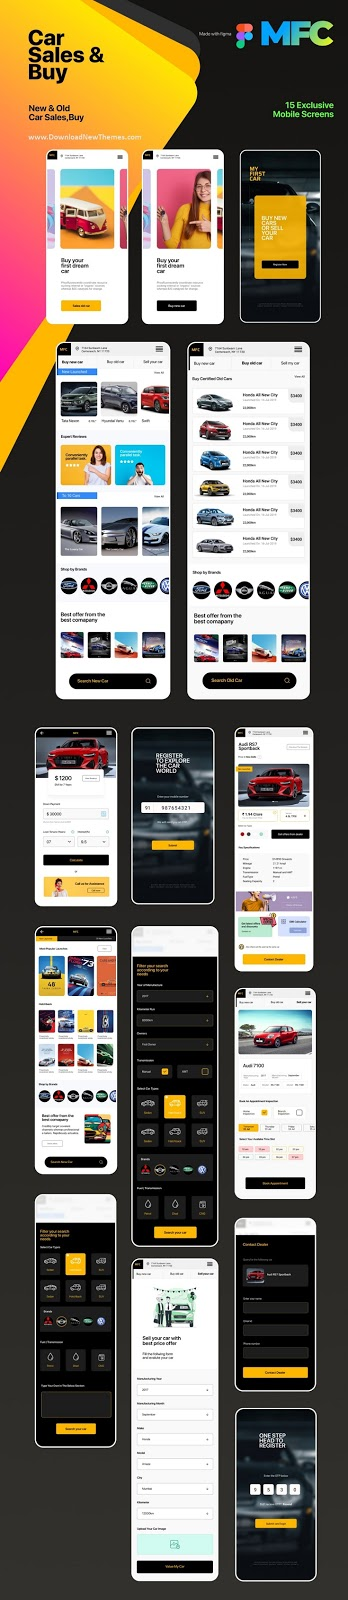 Car Sales and Buy Mobile App Template